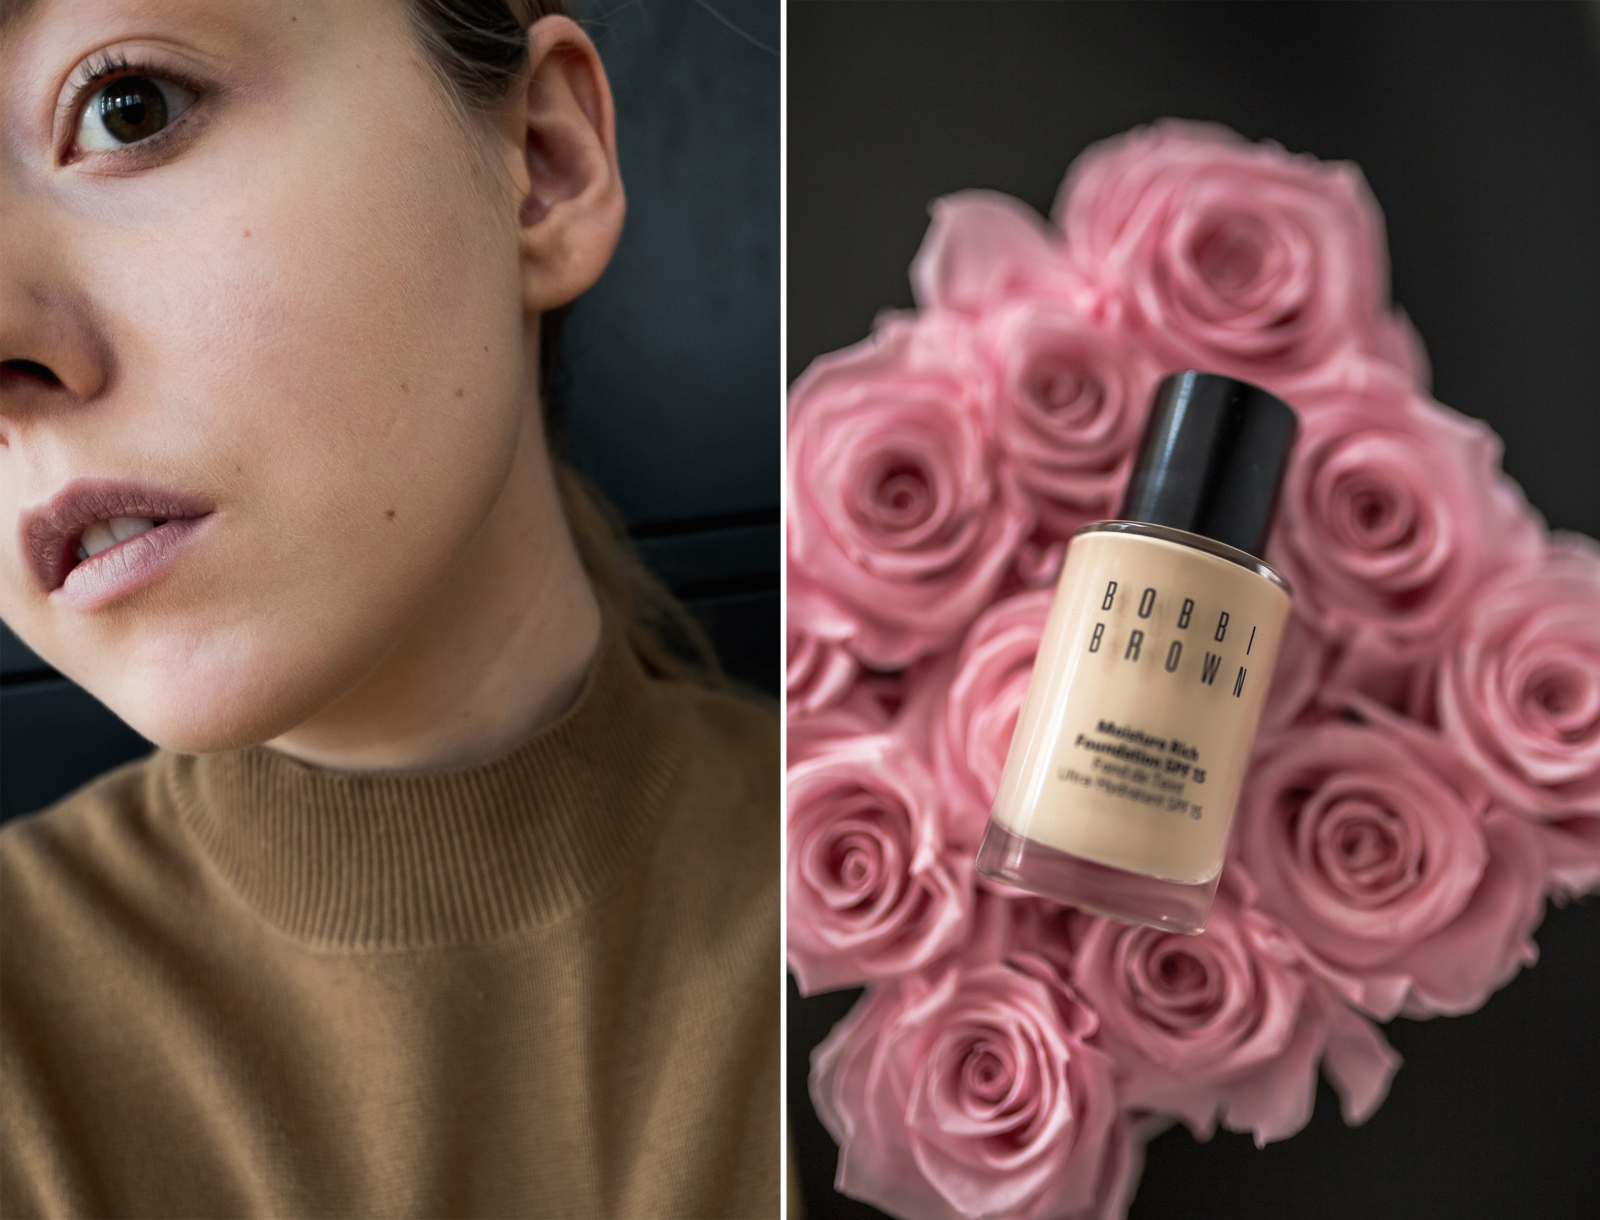 5_besten_Foundations_La Mer_Chanel_Charlotte_Tilbury_Yves Saint Laurent_Bobbi Brown_High End_Berlin_The-Limits-of-Control-Fashion-Fashionblogger-Blogger-Berlin-Deutschland-Modeblog-Modeblogger